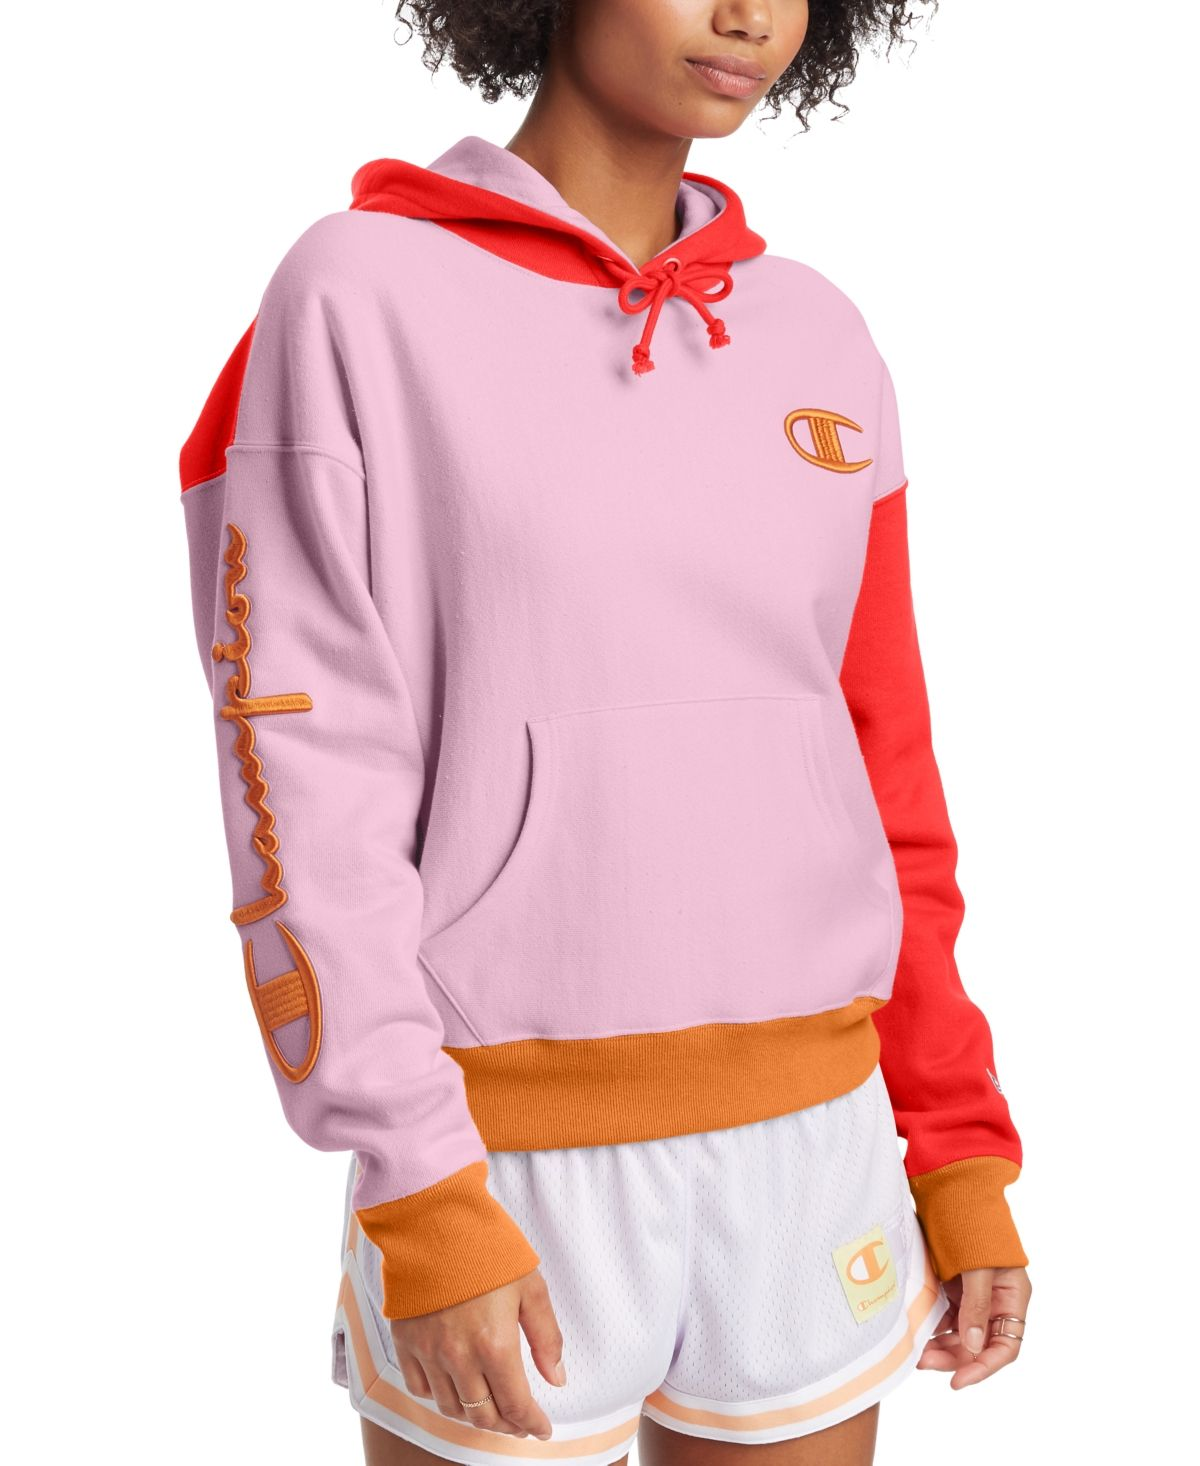 Champion Reverse Weave Colorblocked Hoodie Icecake Redflame Ornamentlrust Champion Clothing New Outfits Hoodies [ 1466 x 1200 Pixel ]